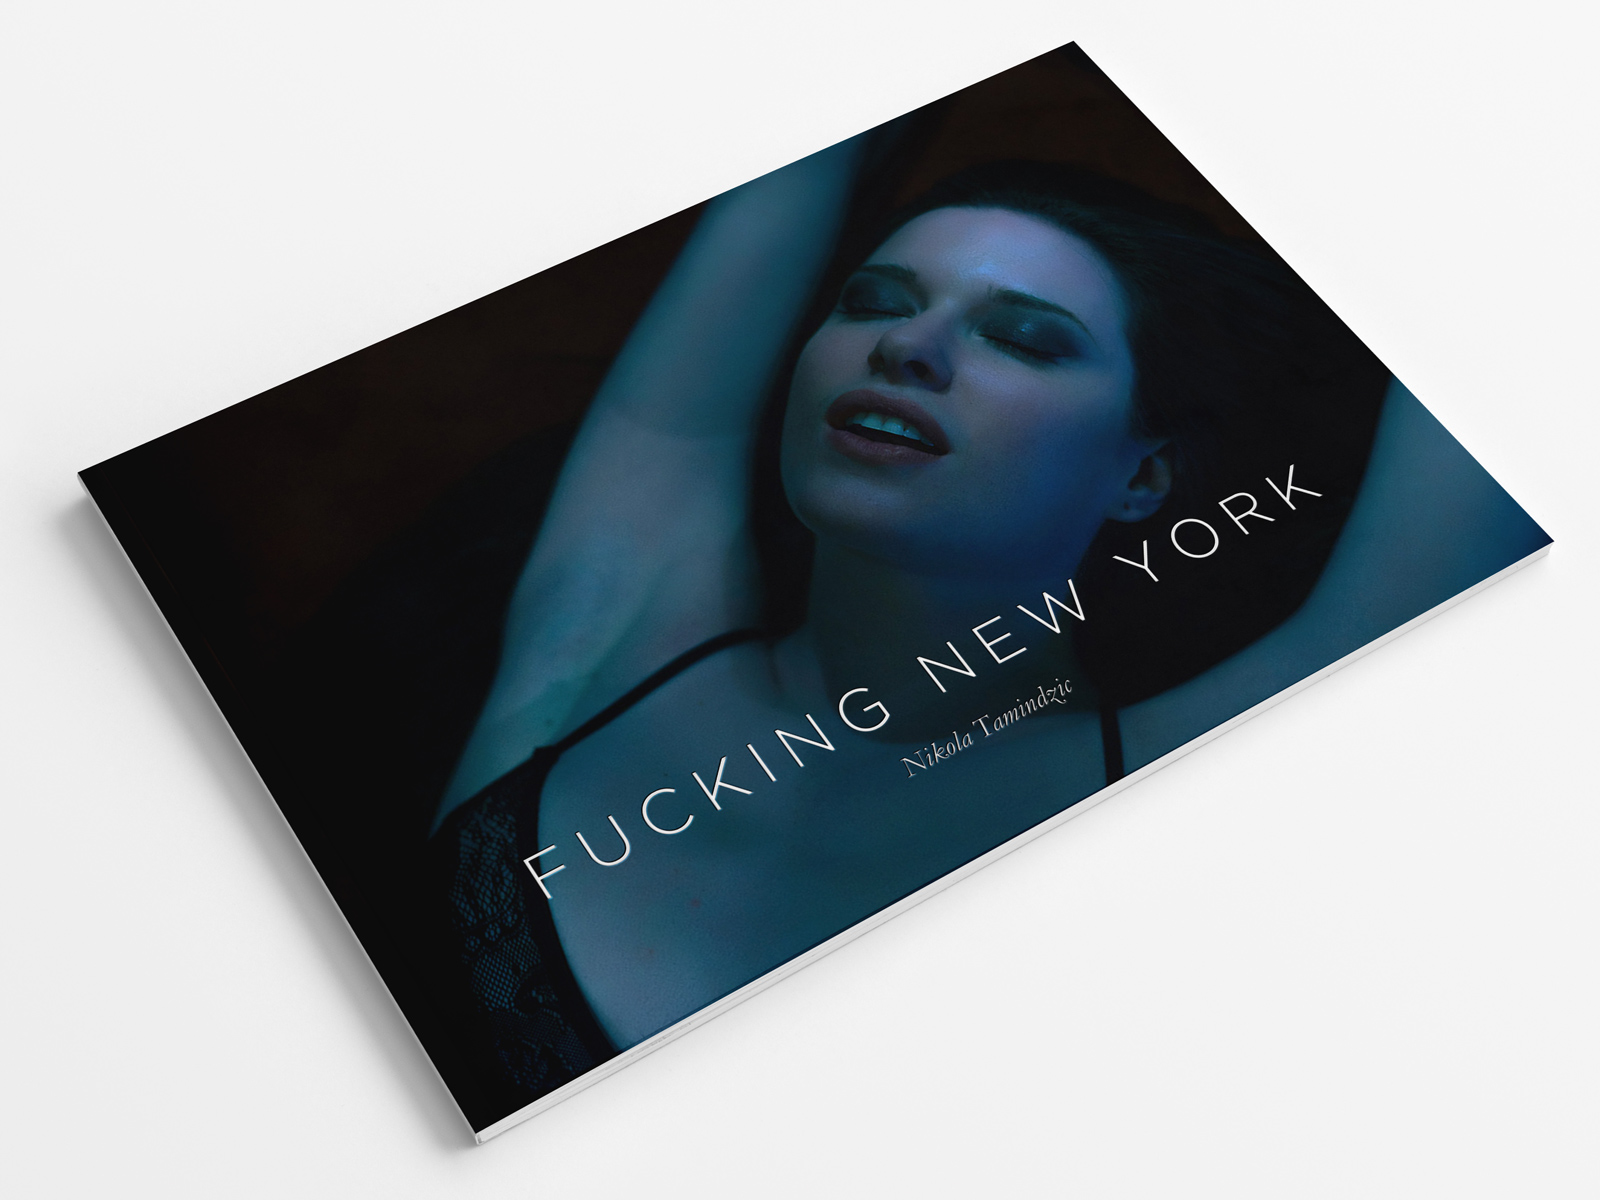 FUCKING NEW YORK book teaser at Home of the Vain; New series starting today. Check the teaser gallery at fuckingnewyork.com.